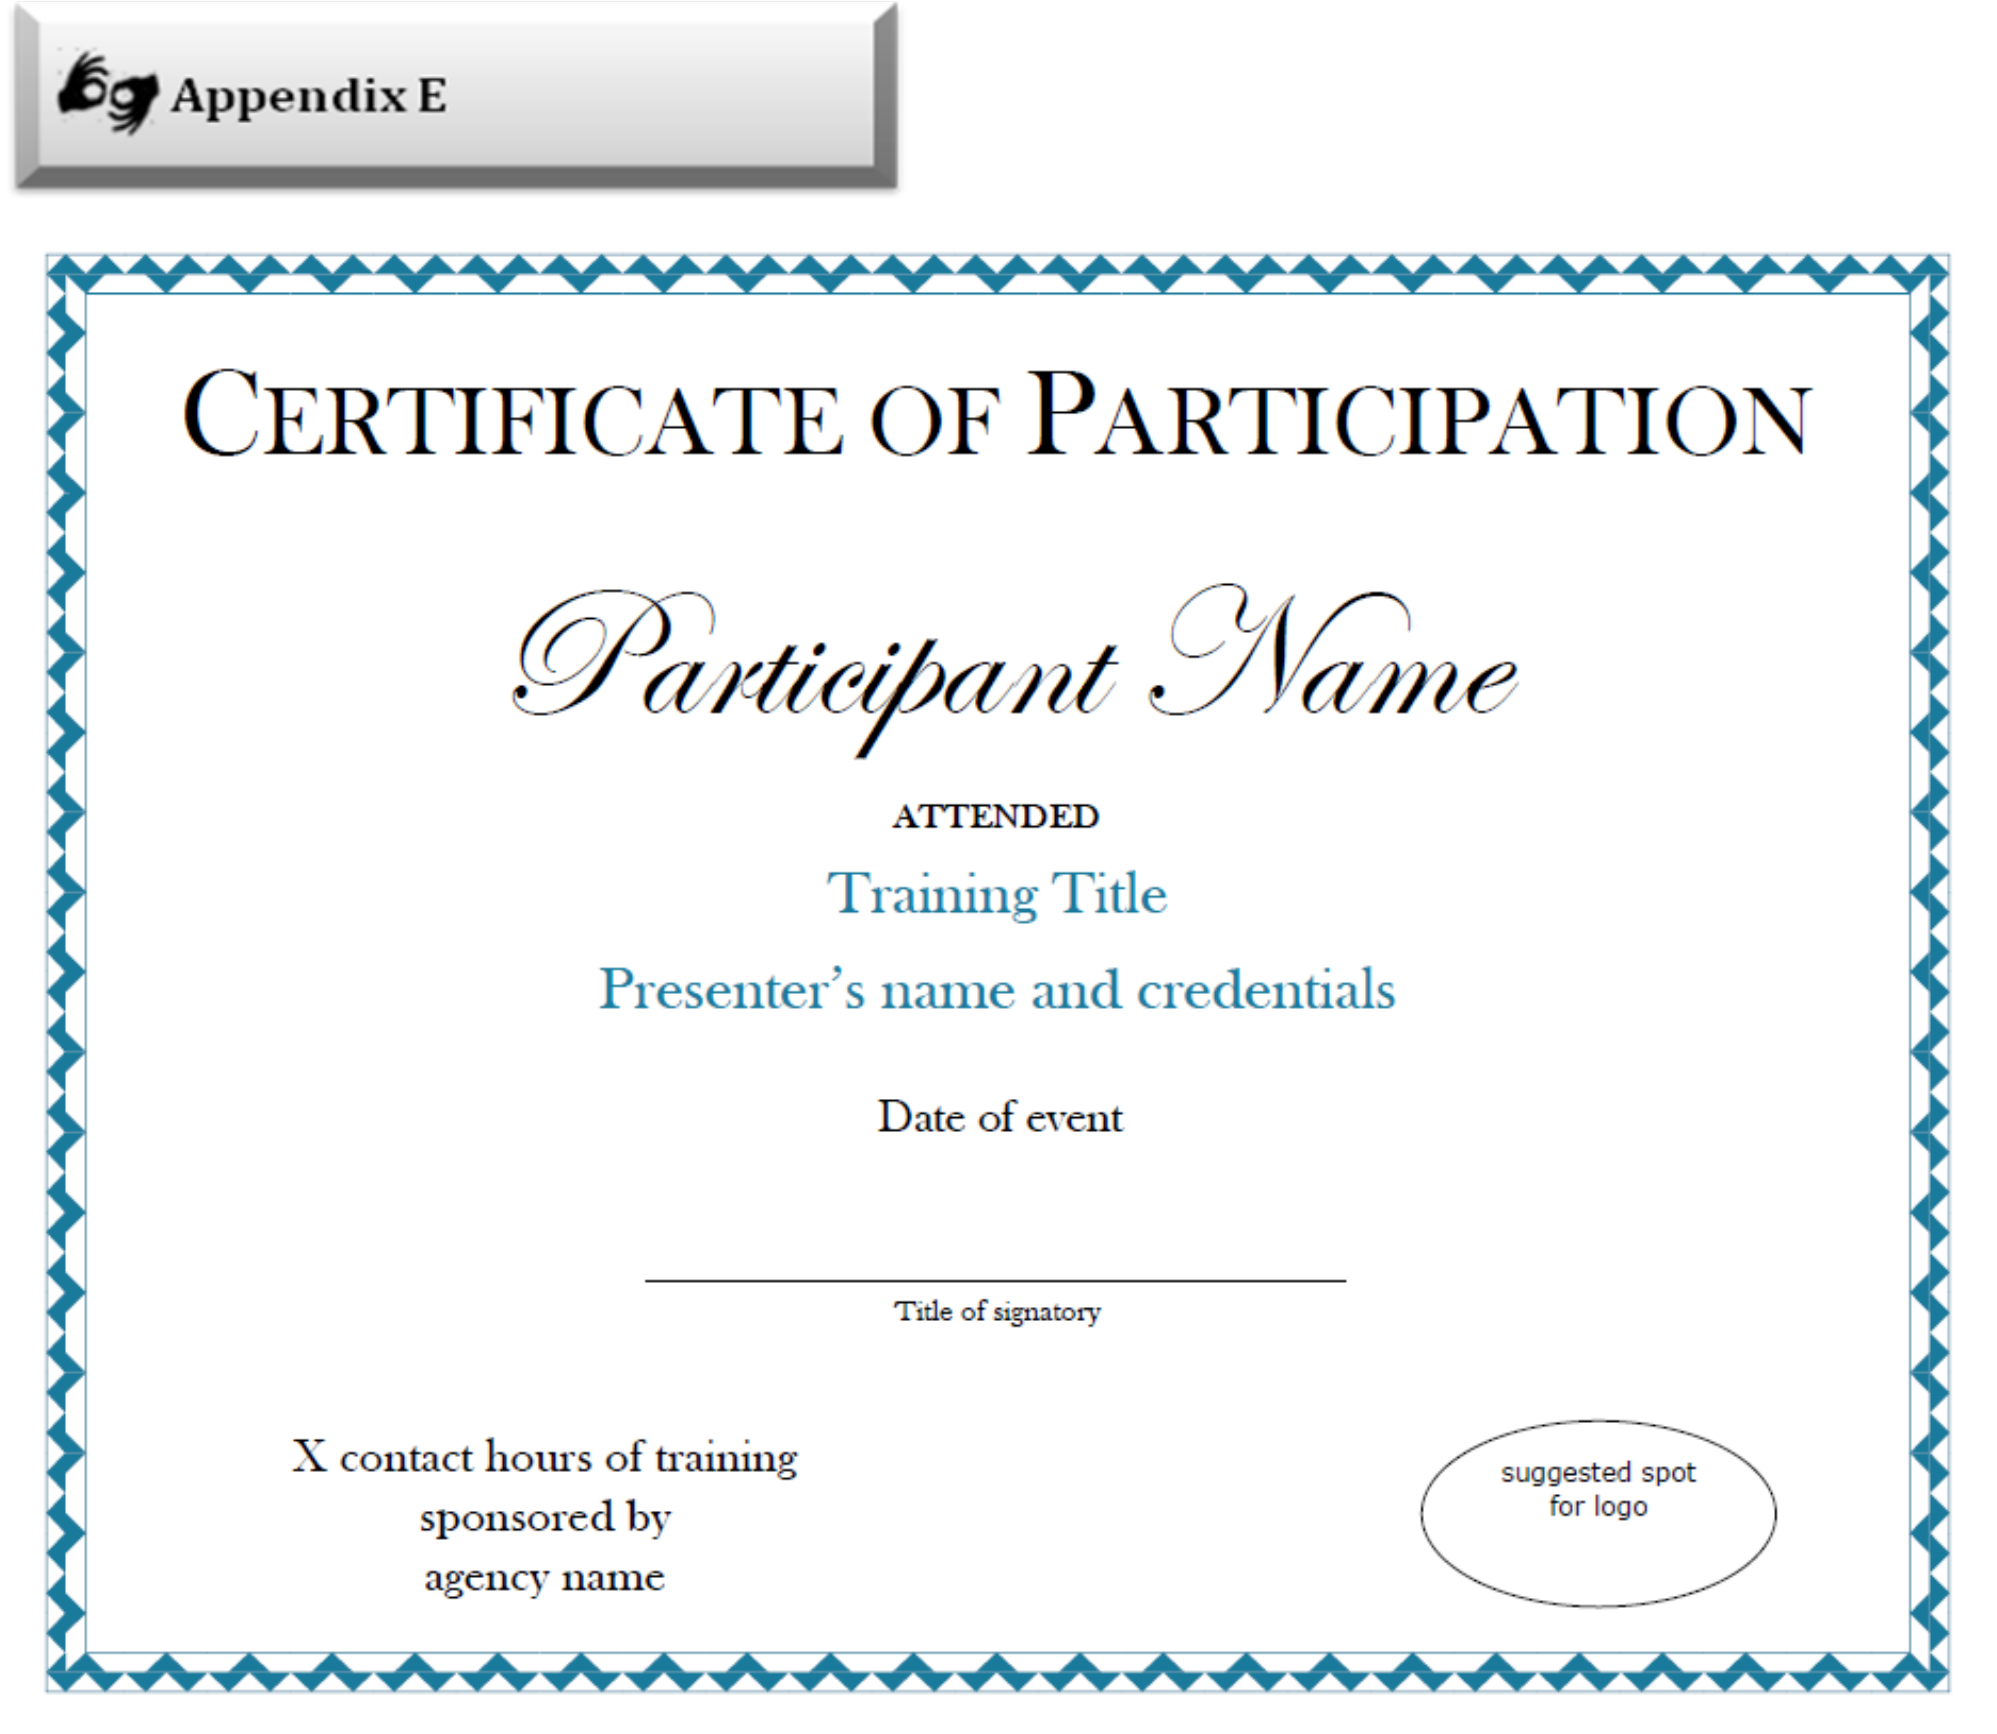 Certificate of participation sample free download for Certificate of participation template